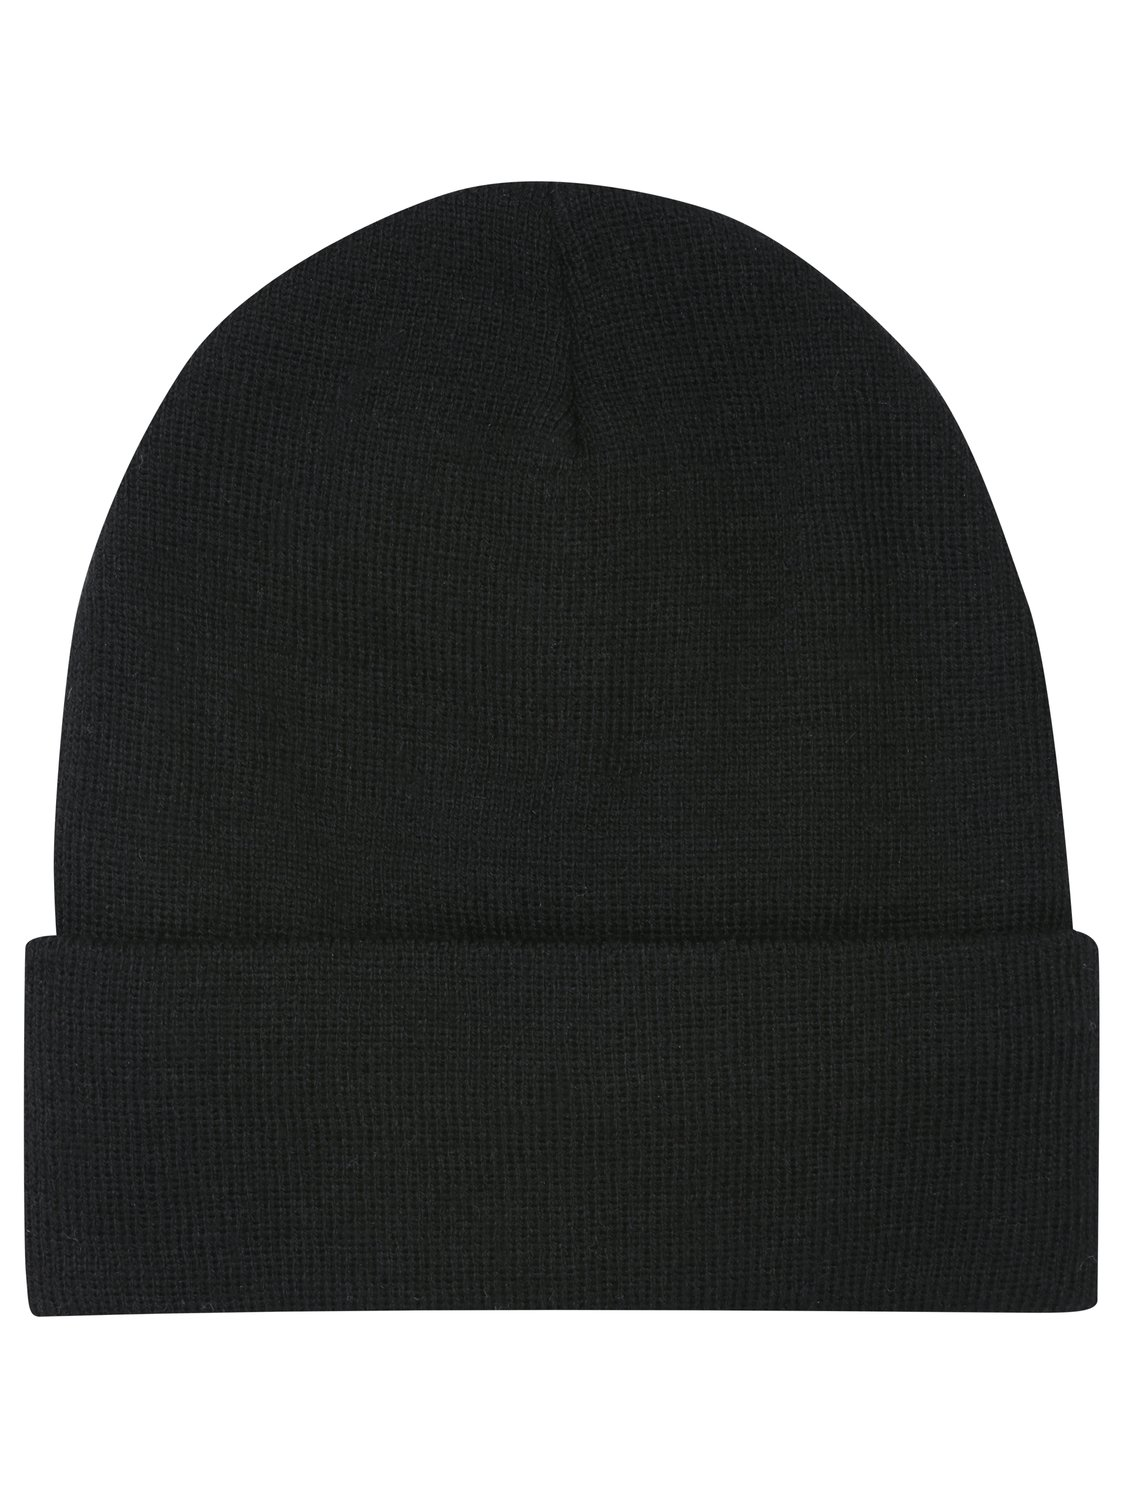 b545a36ed8d2f Mens thermal plain knitted beanie hat with thinsulate lining cold weather  winter hat - Black